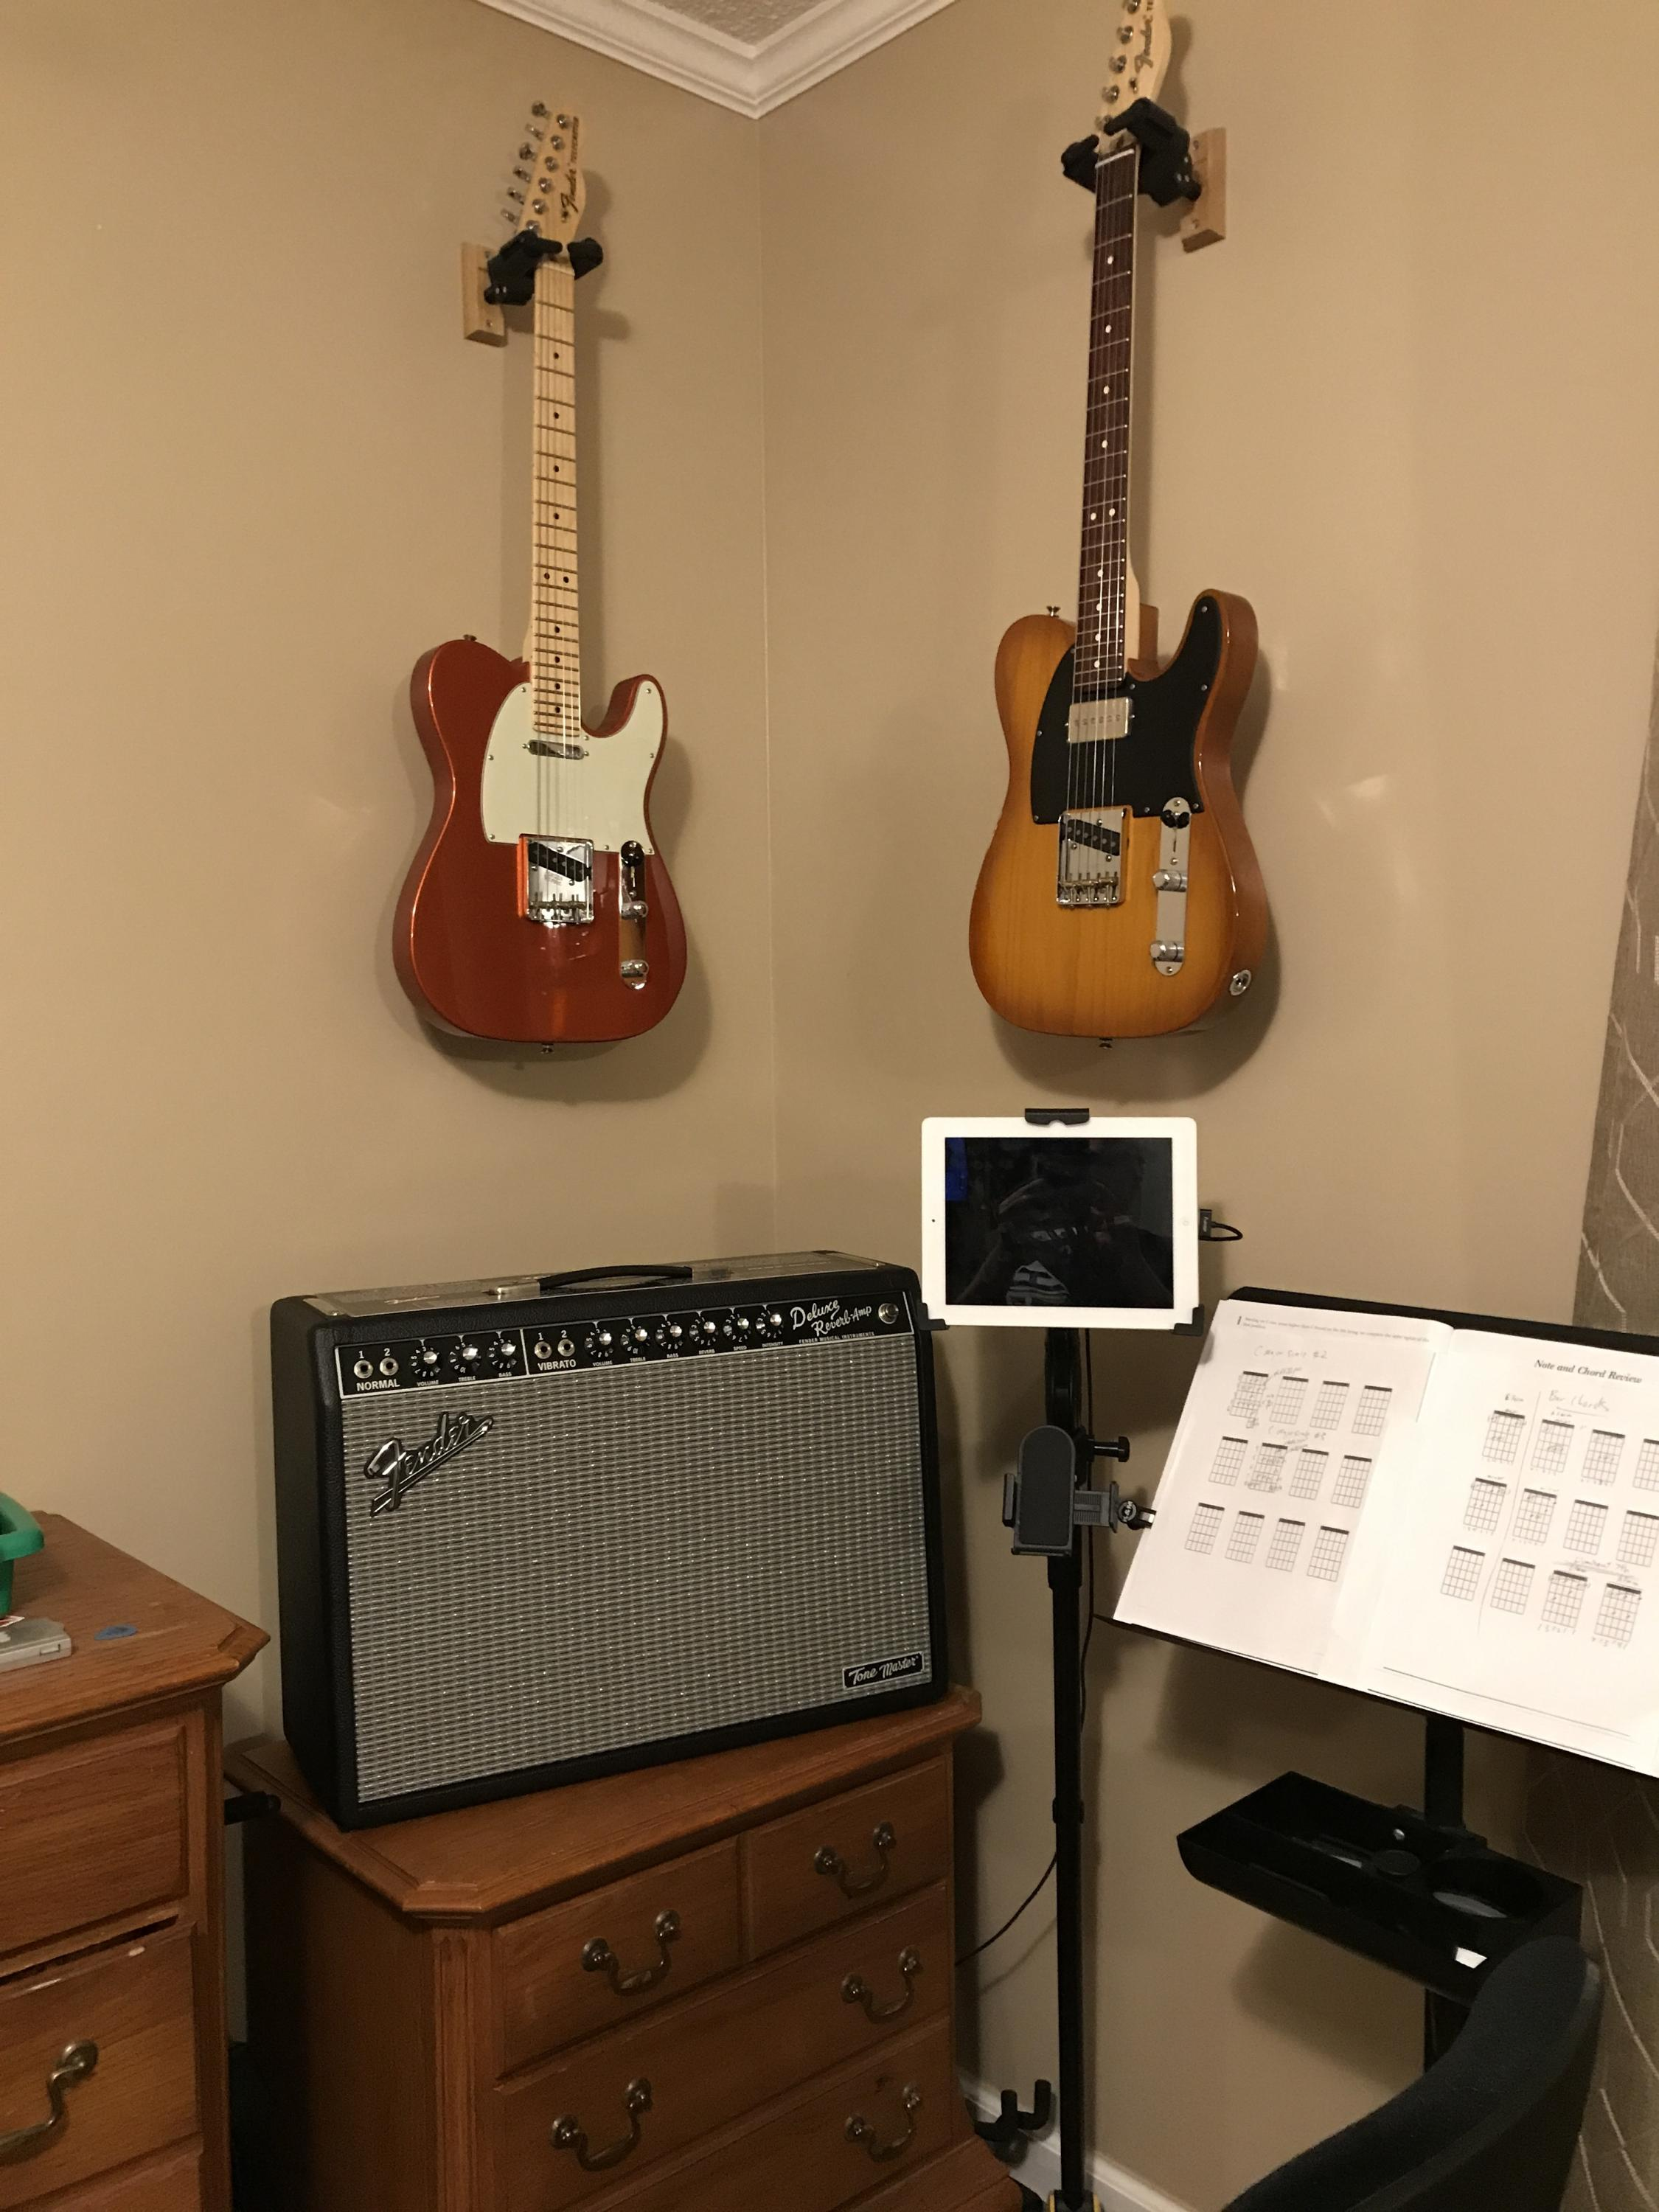 How Many Guitar Amps Do You Own?-20201024_031615814_ios-jpg